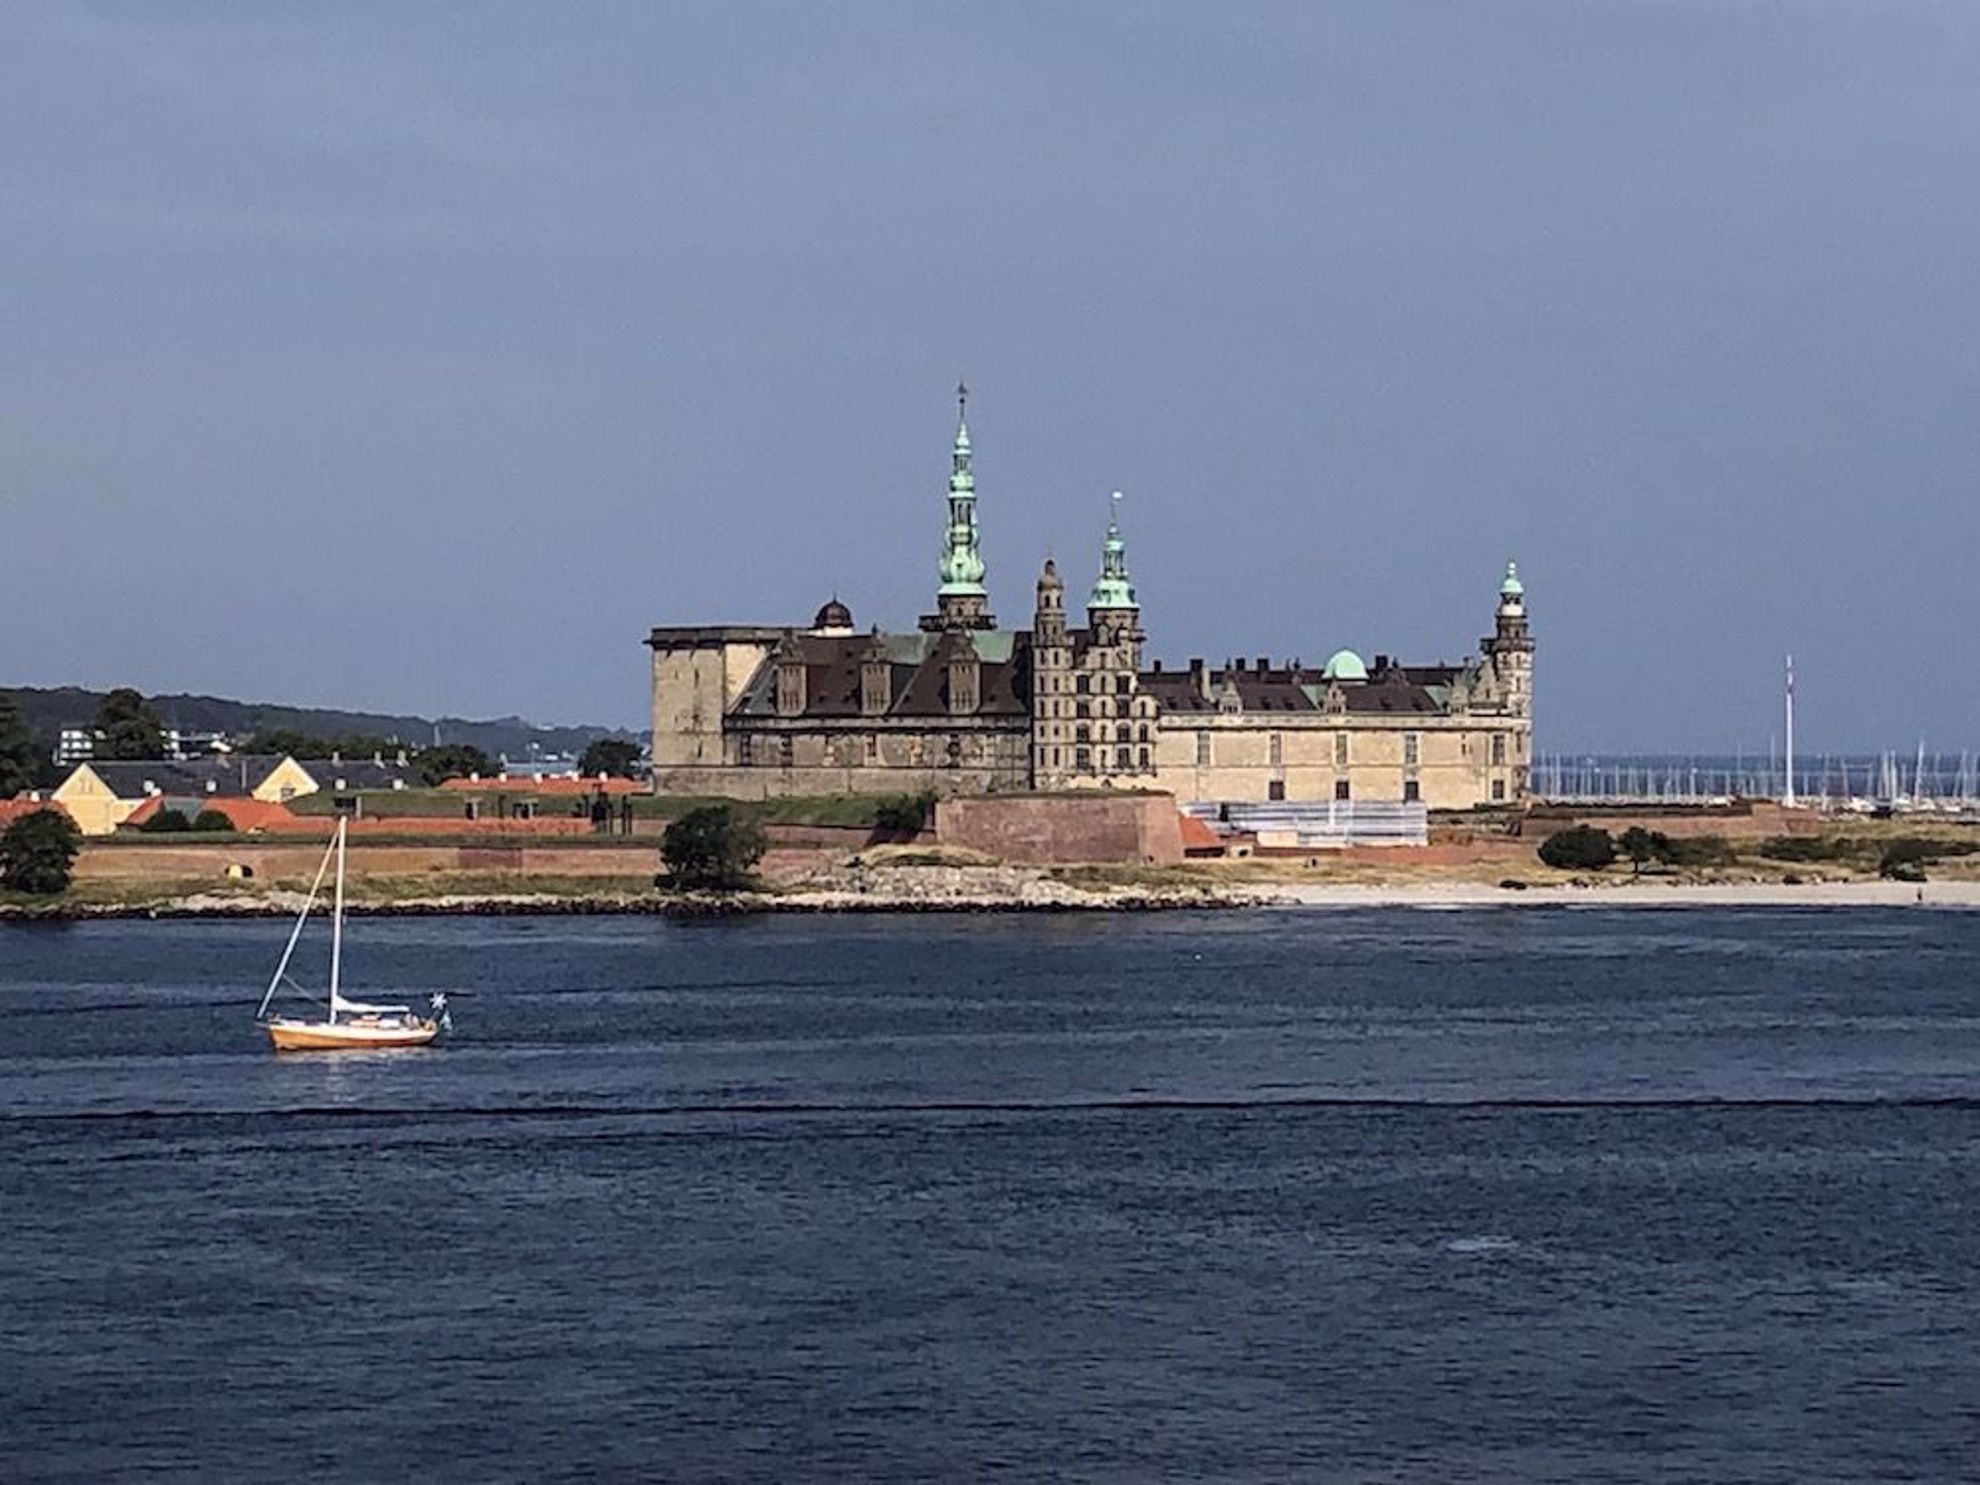 Castle at Helsingor Denmark